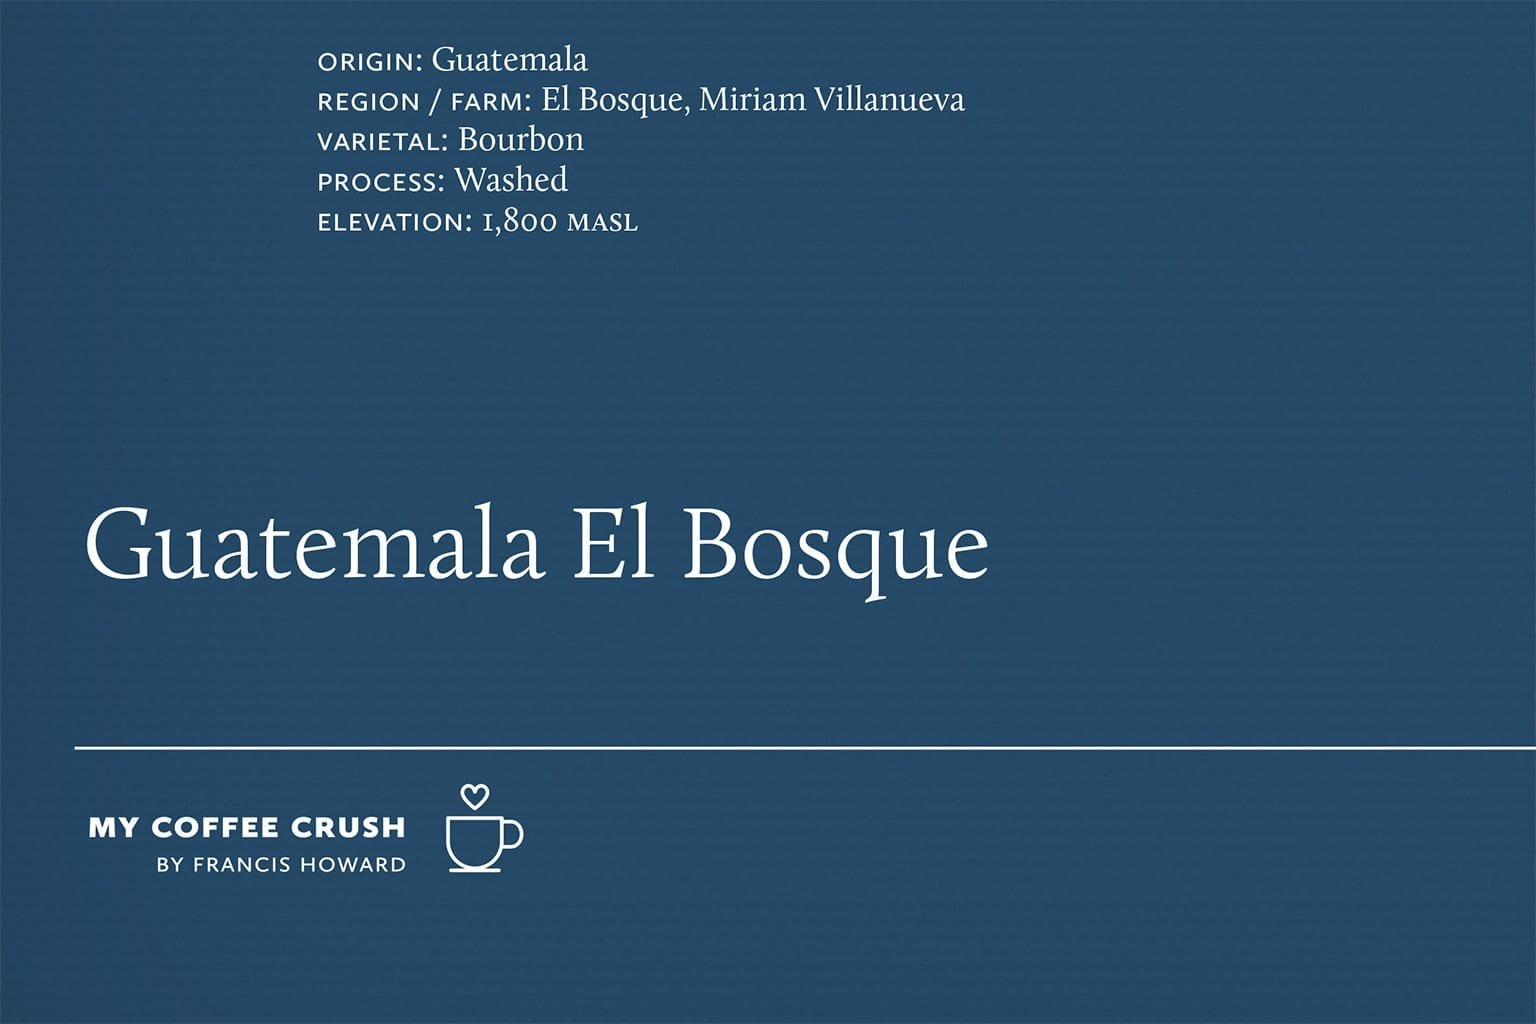 Coffee Crush - Kuma Guatemala El Bosque